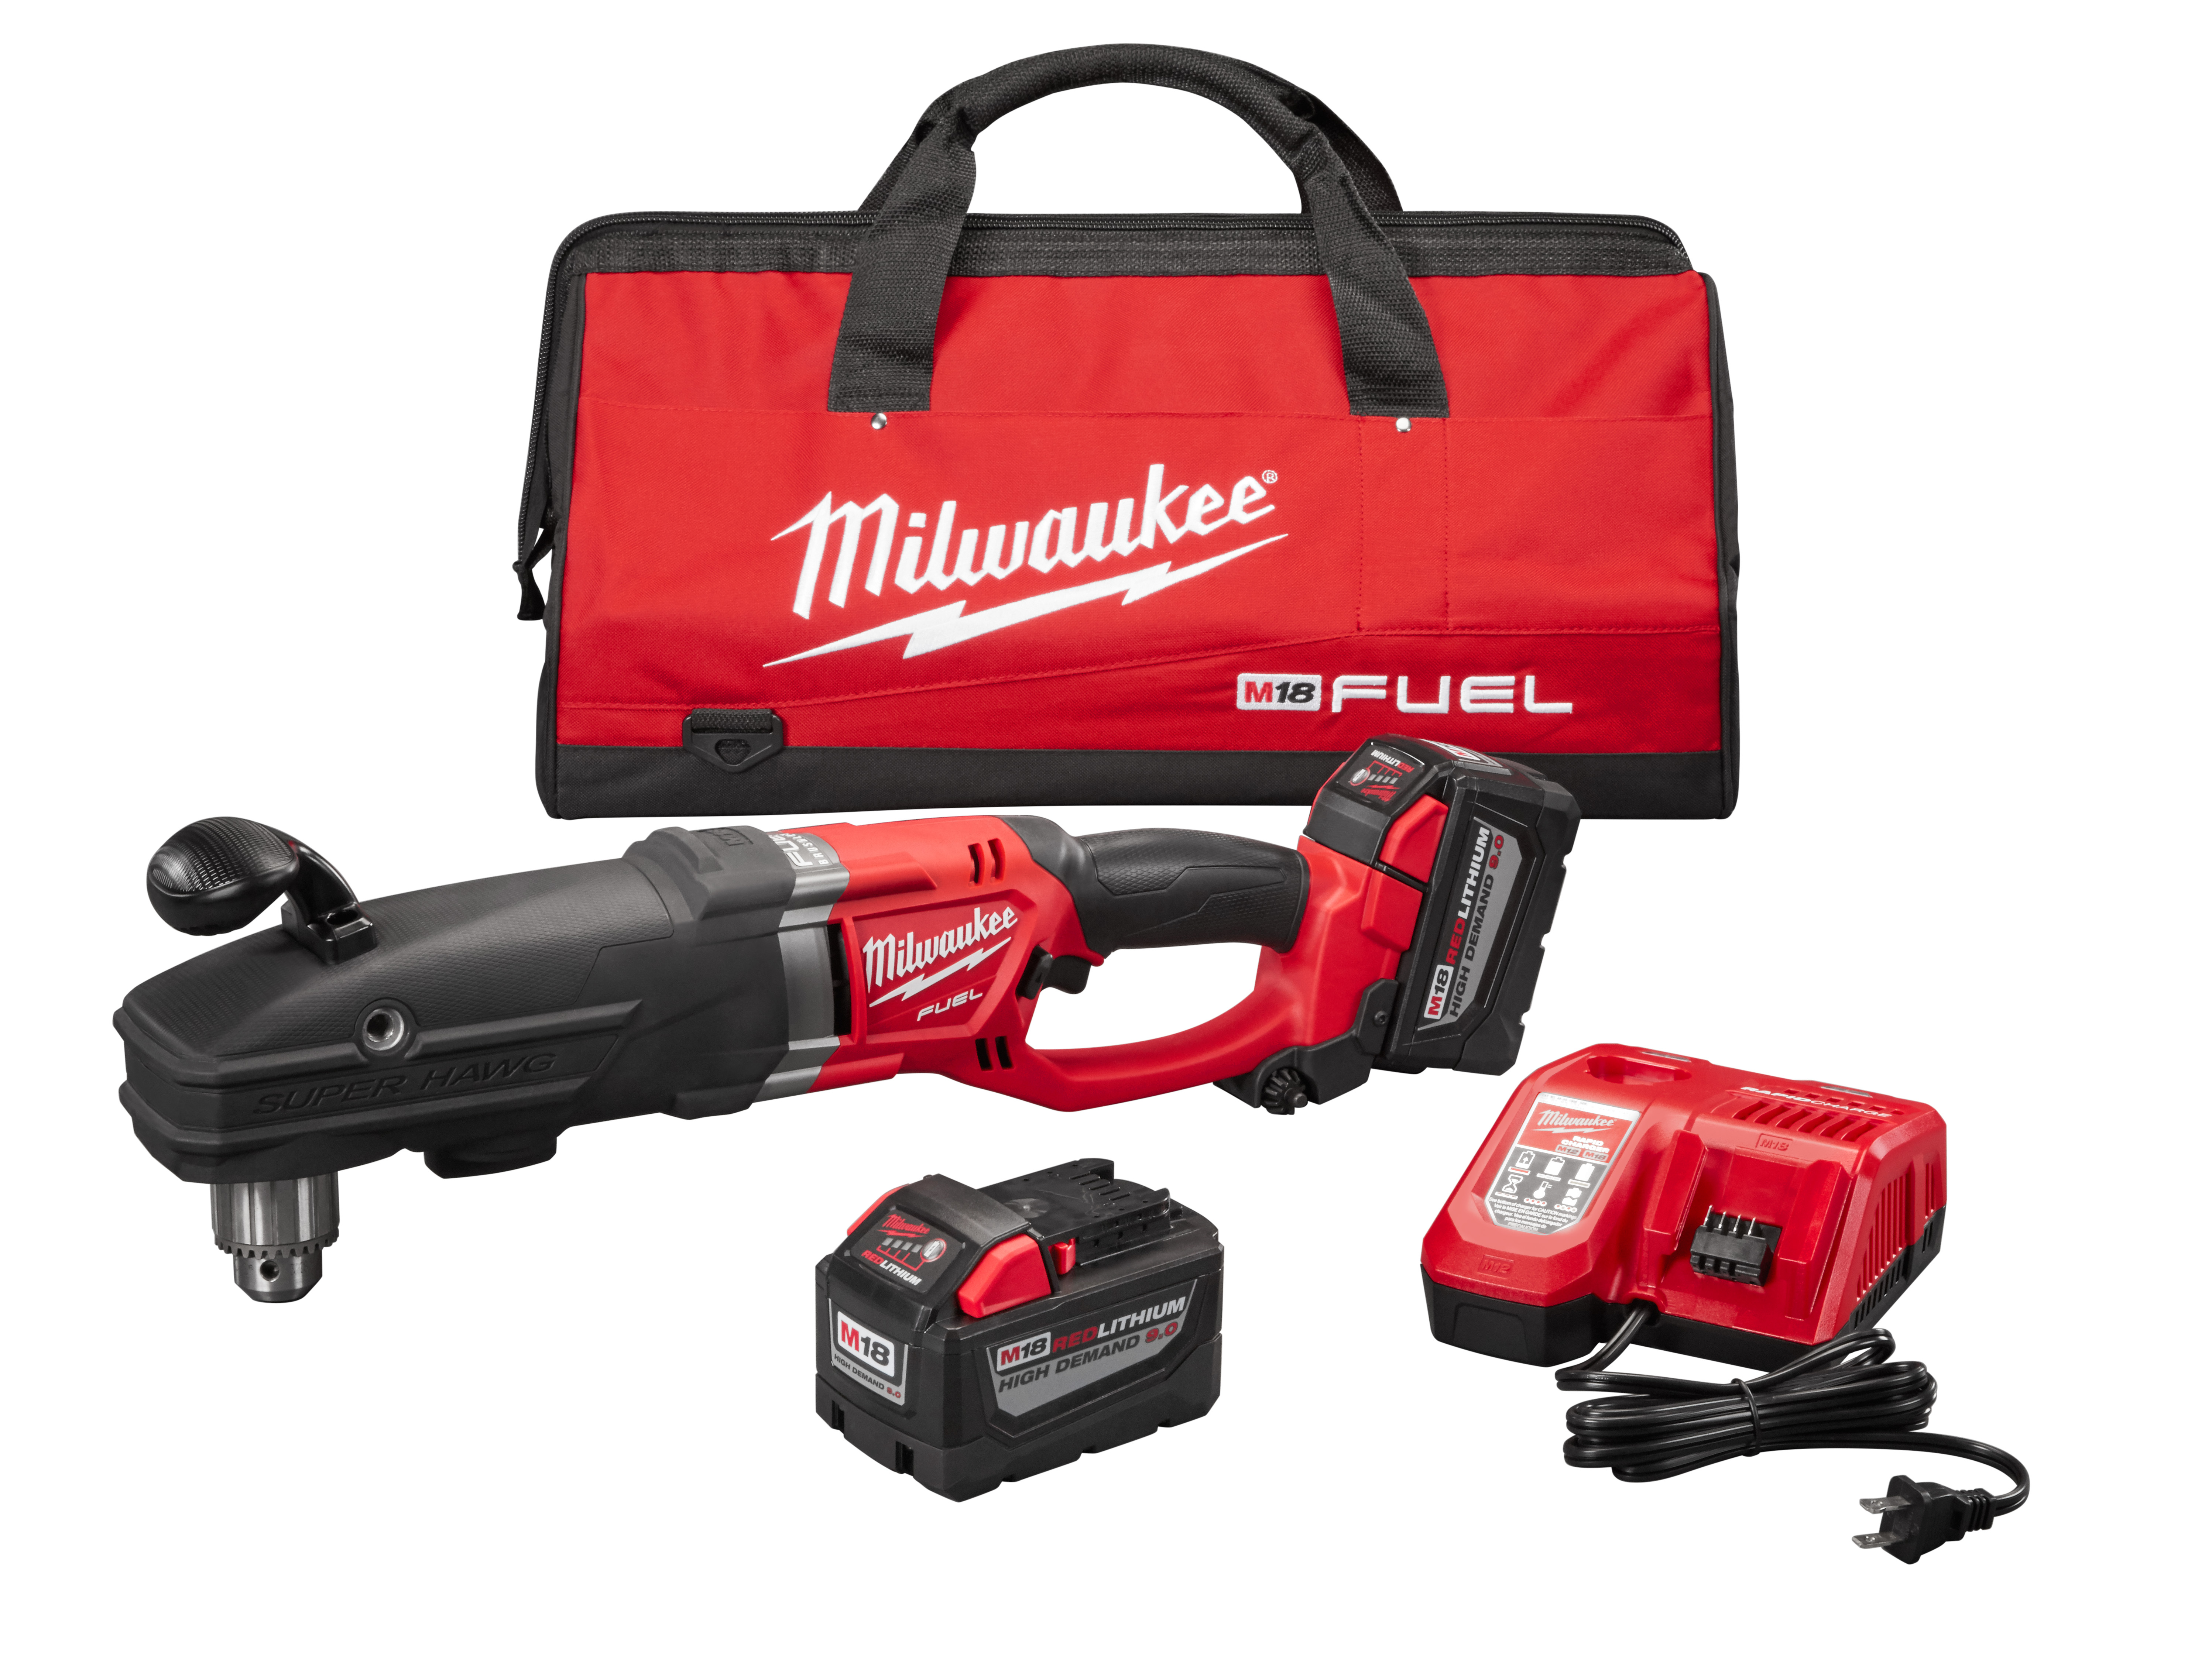 Milwaukee® M18™ FUEL™ 2709-22HD HighDEMAND™ SUPER HAWG® Cordless Right Angle Drill Kit, 1/2 in Metal Keyed Chuck, 18 VDC, 0 to 350/0 to 950 rpm No-Load, 22 in OAL, Lithium-Ion Battery